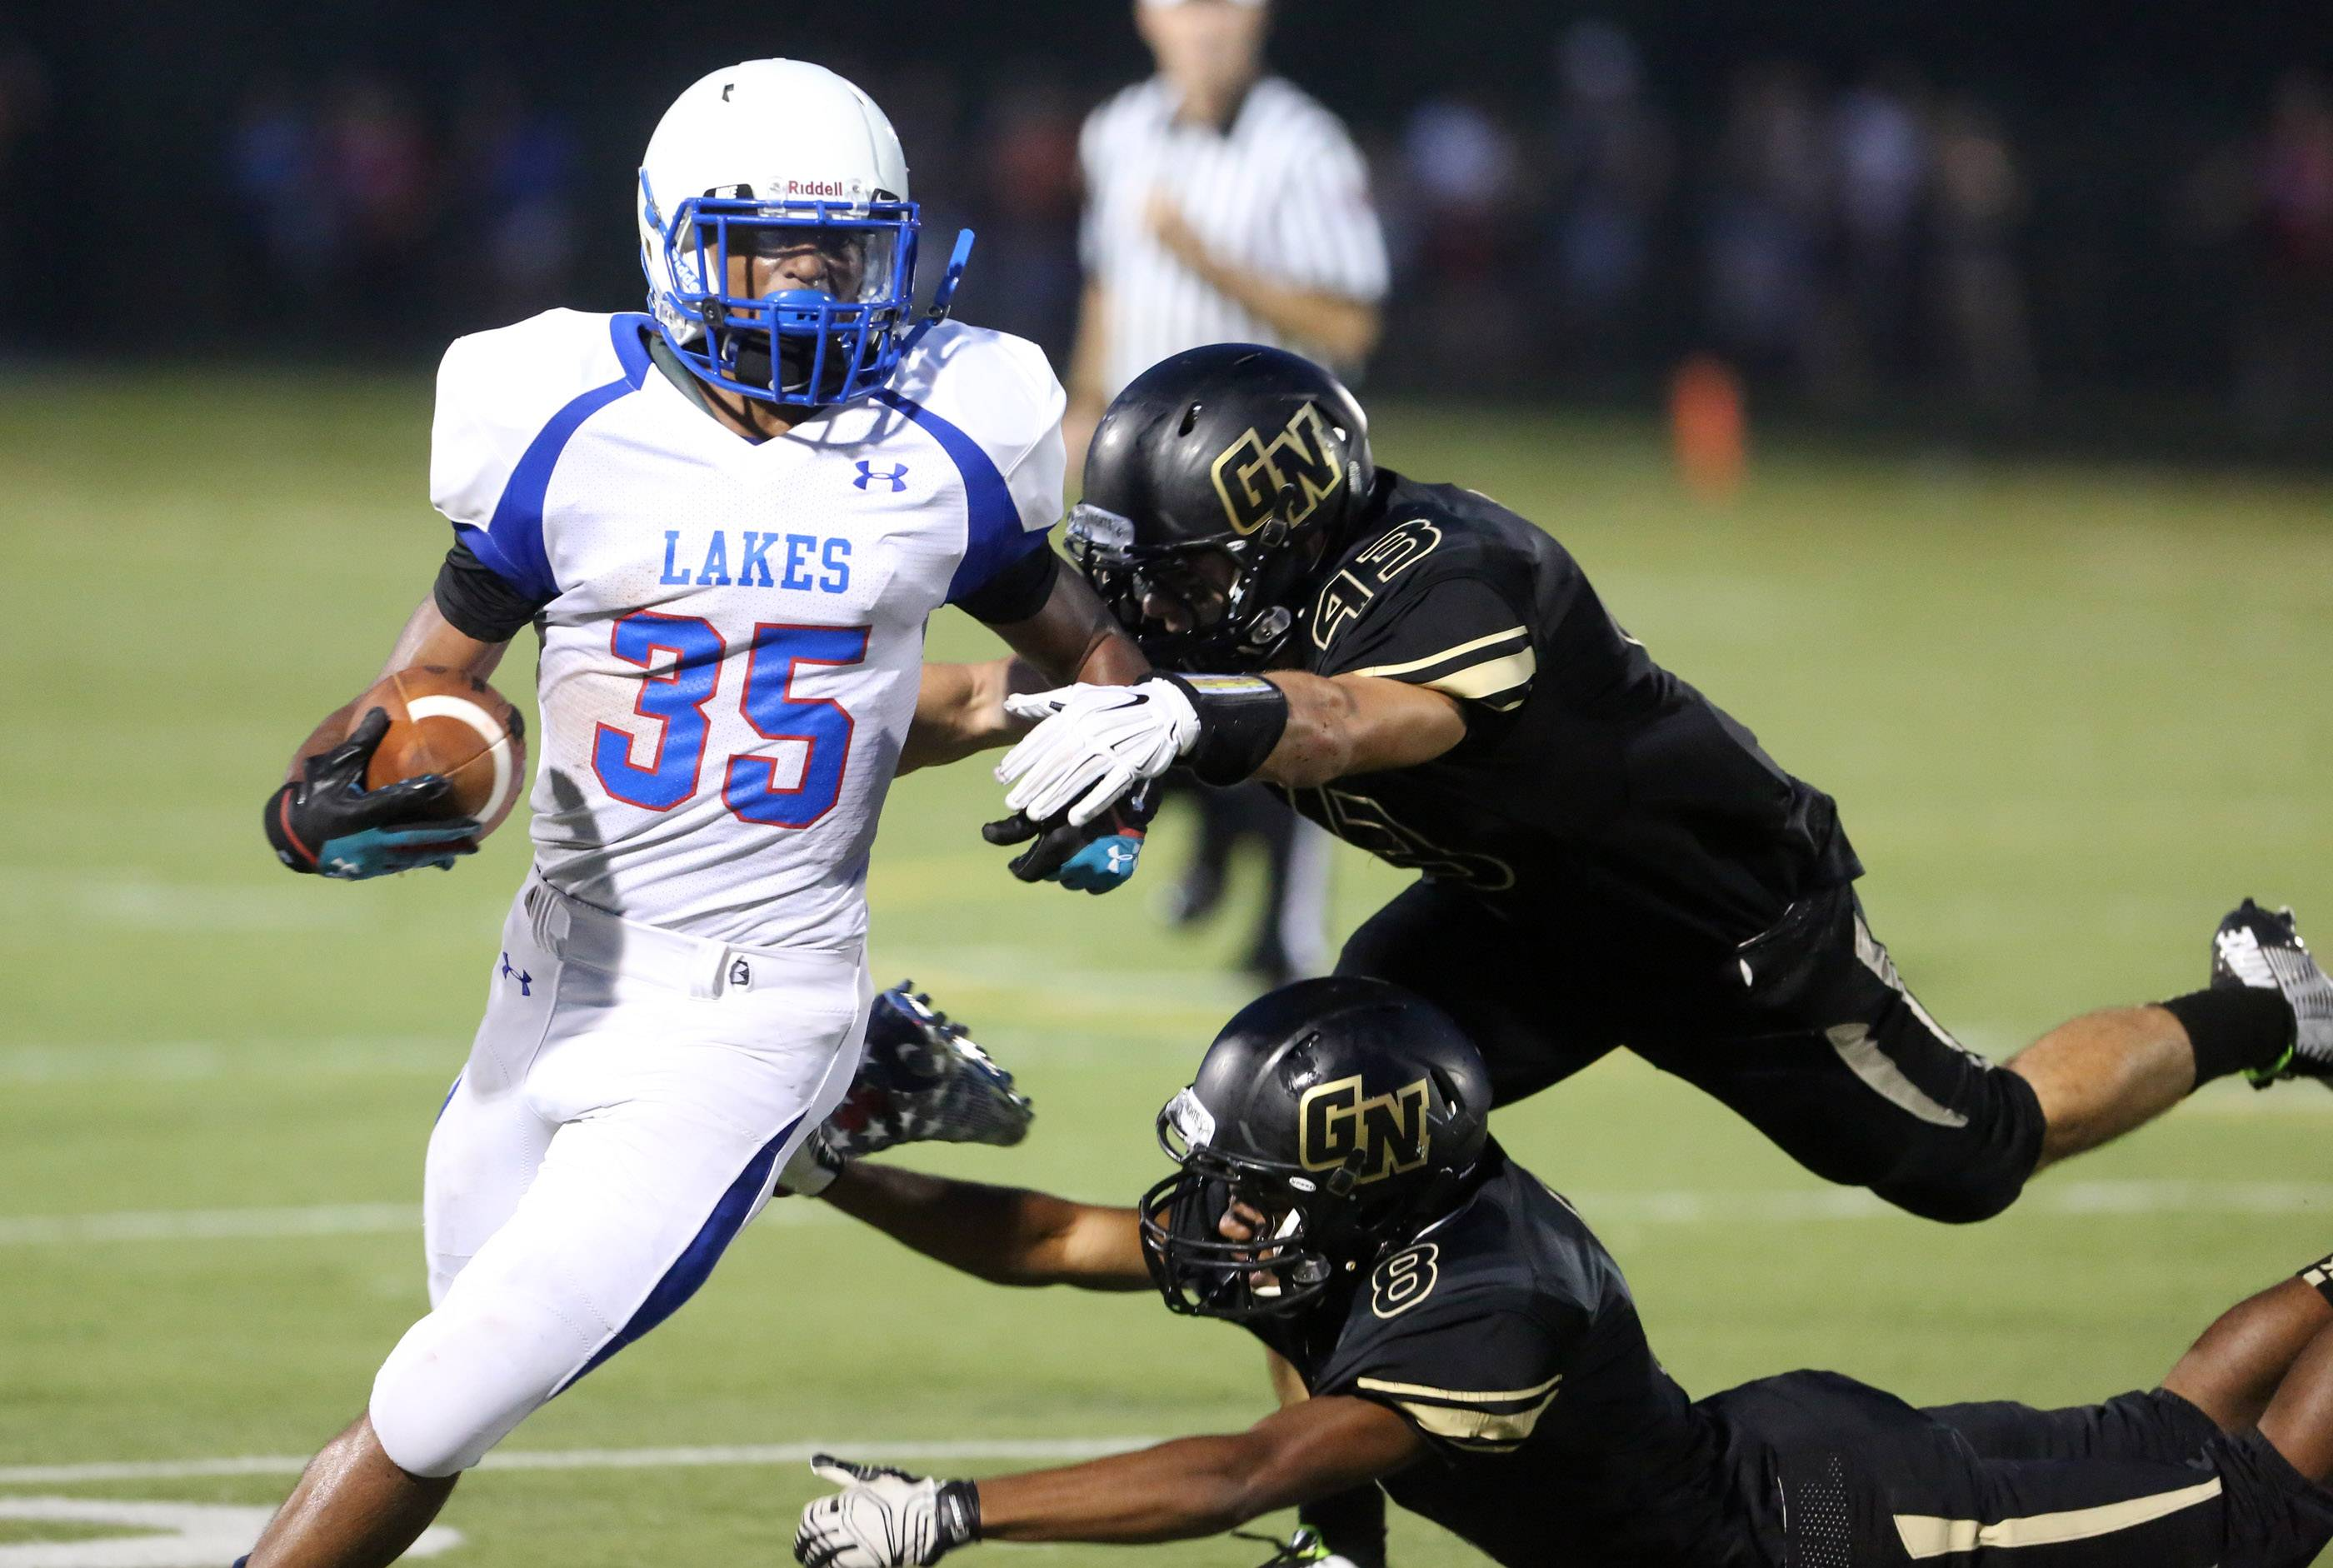 Lakes running back Devyn Cedzidlo slips away from Grayslake defenders Jack McCue, top right, and James King.